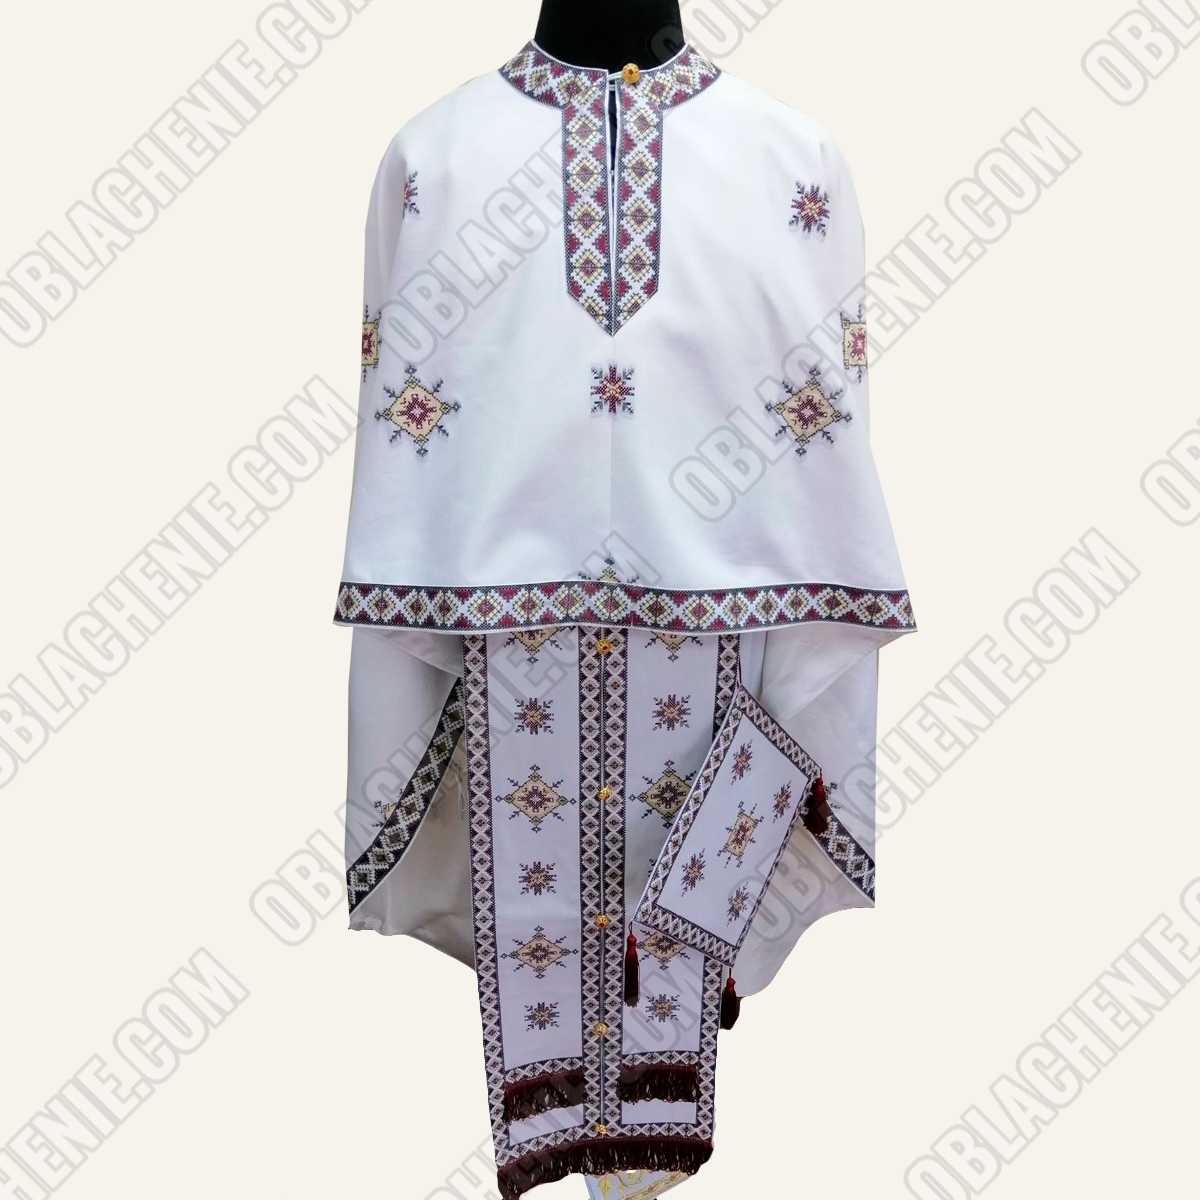 PRIEST'S VESTMENTS 11056